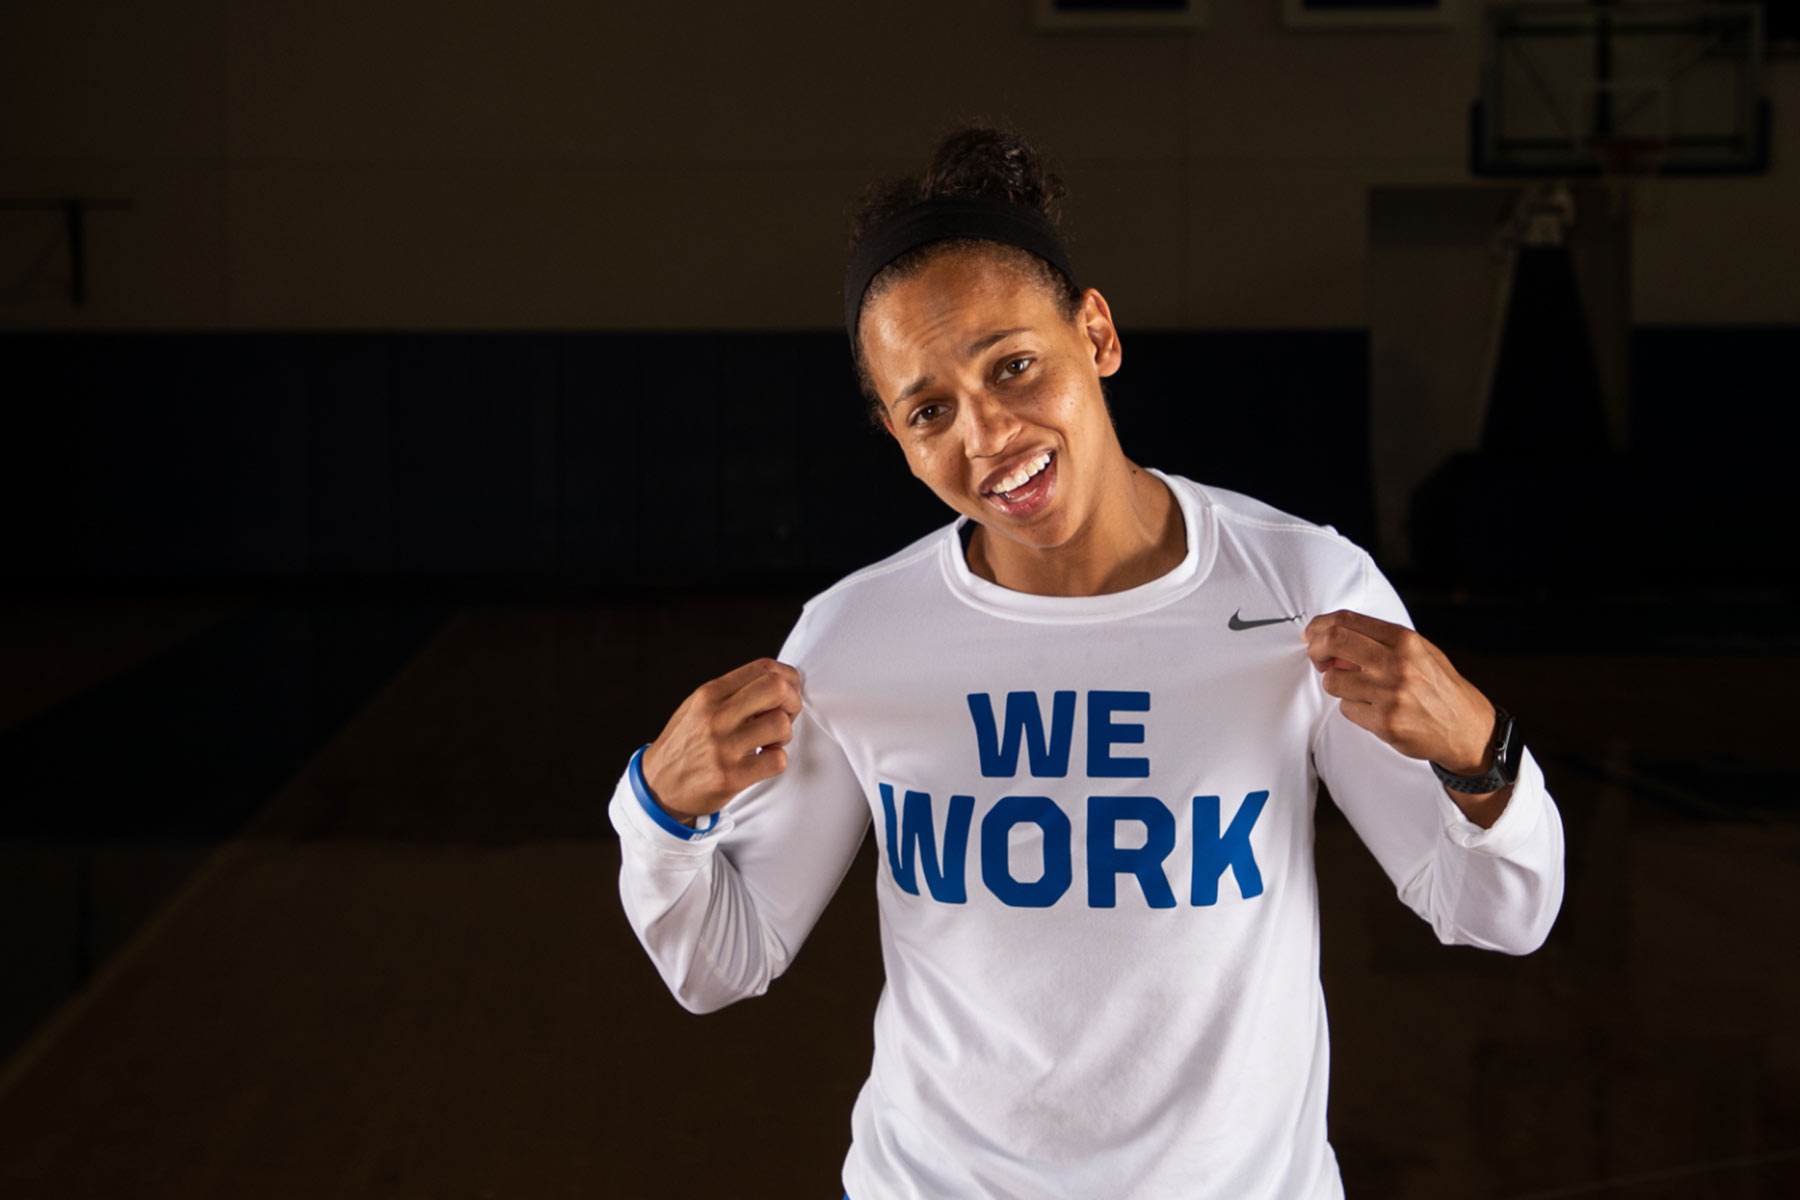 A portrait photo of Amber Smith, a young, athletic Black woman with her dark brown in a bun, wearing a white long sleeved shirt with 'WE WORK' on the front in royal blue letters.